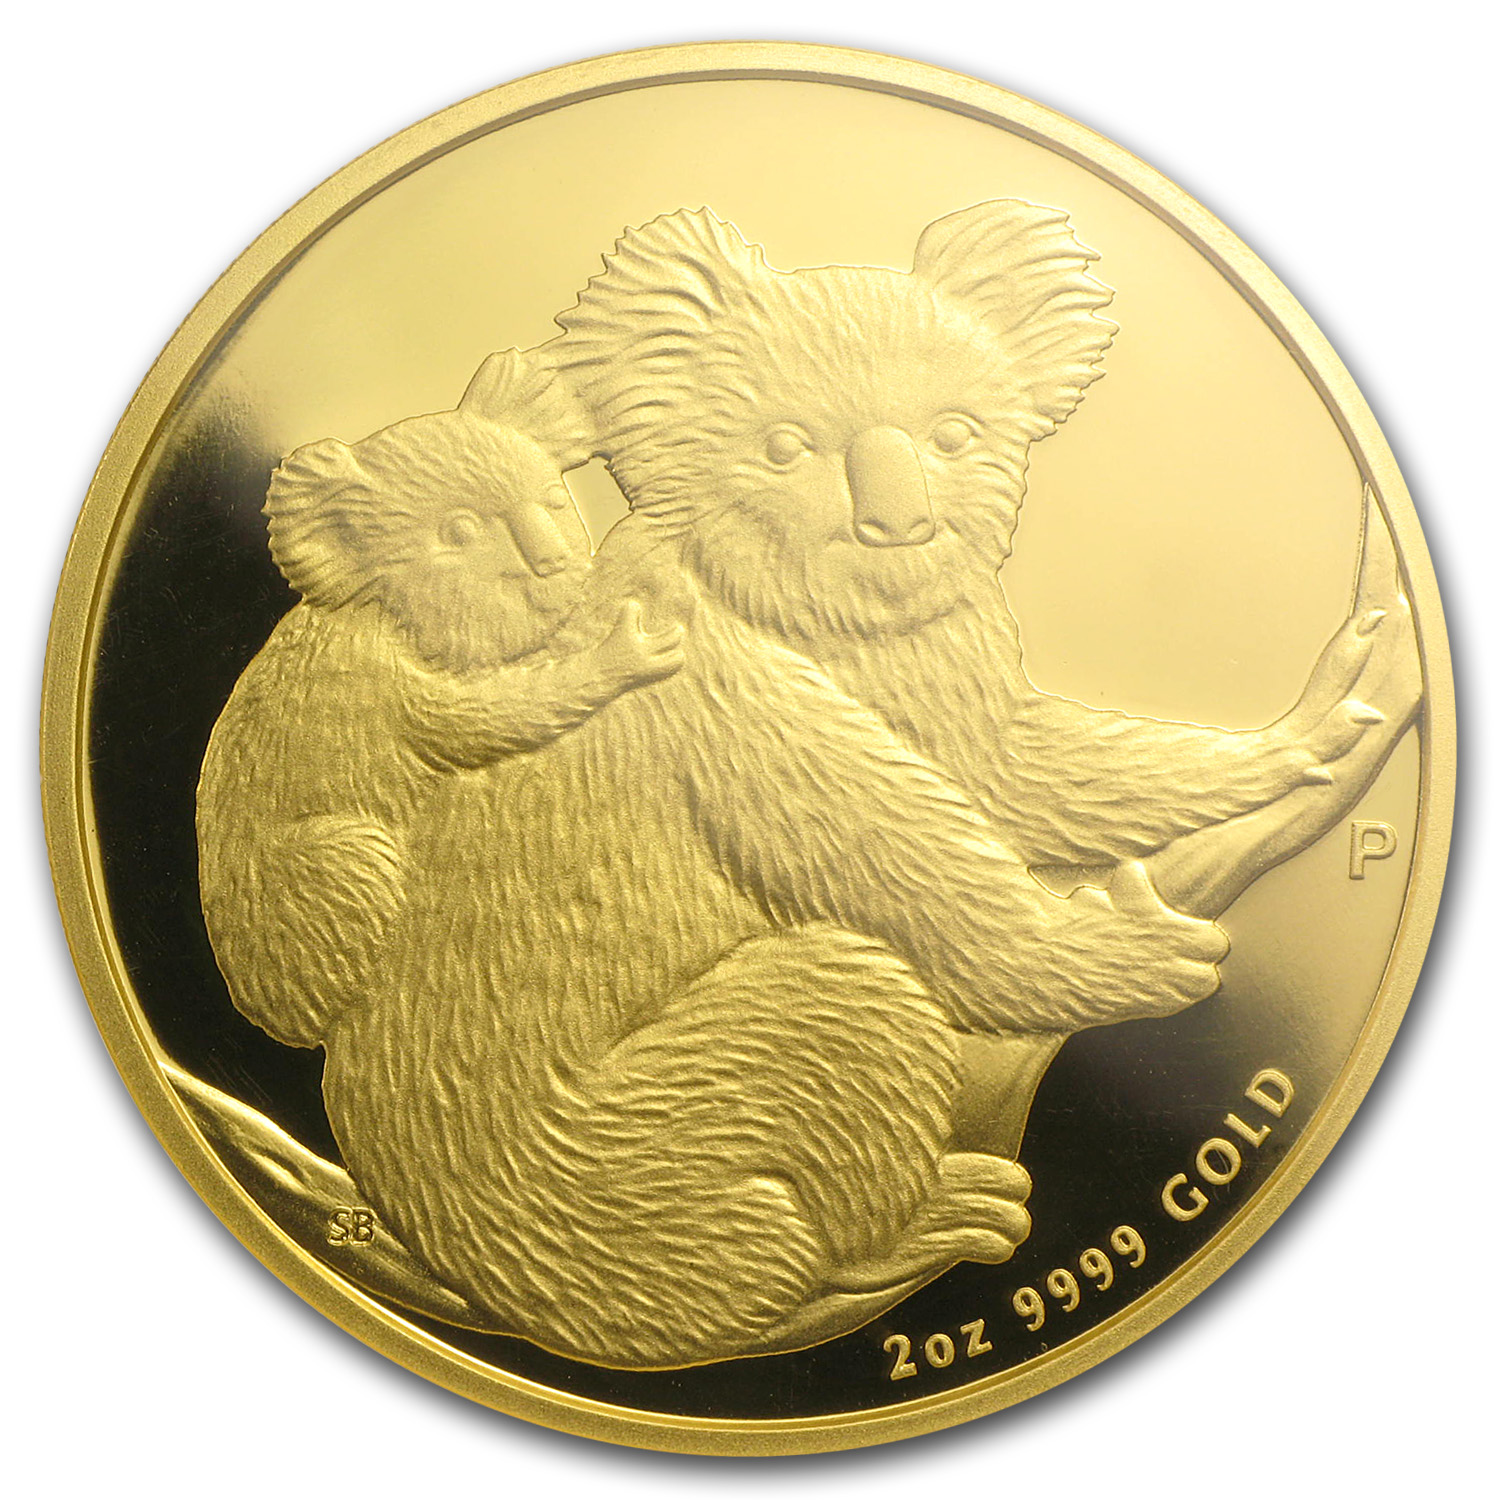 2008 2 oz Proof Australian Gold Koala PF-70 UCAM NGC